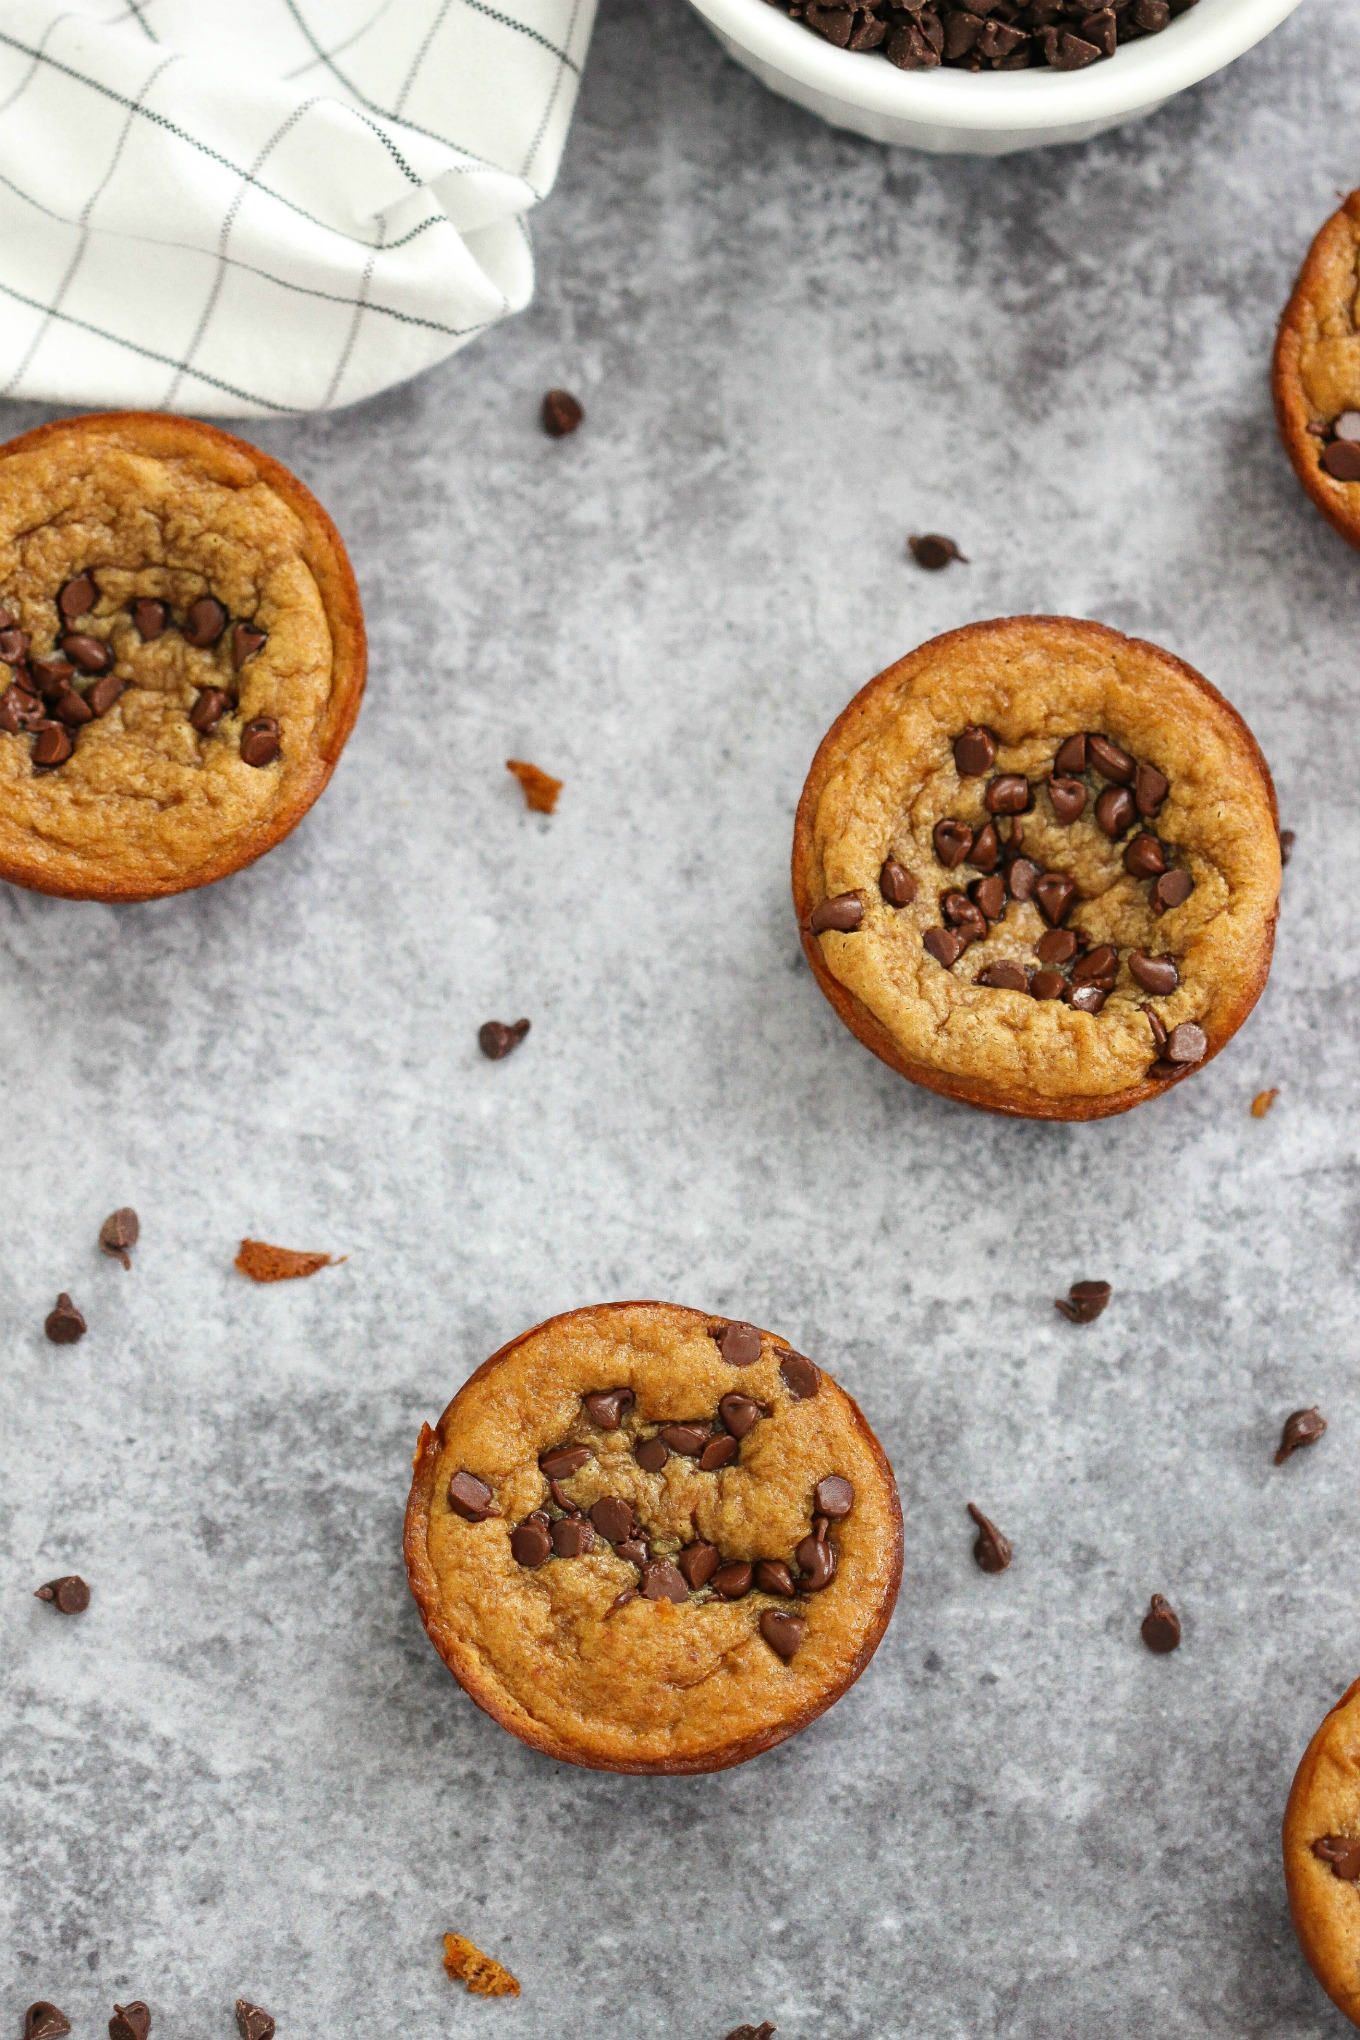 This muffin recipe couldn't get any easier my friends and it's a now a go-to in our after school snack rotation! They're delicious and can be thrown together in a snap with just 5 ingredients you're sure to have on hand.